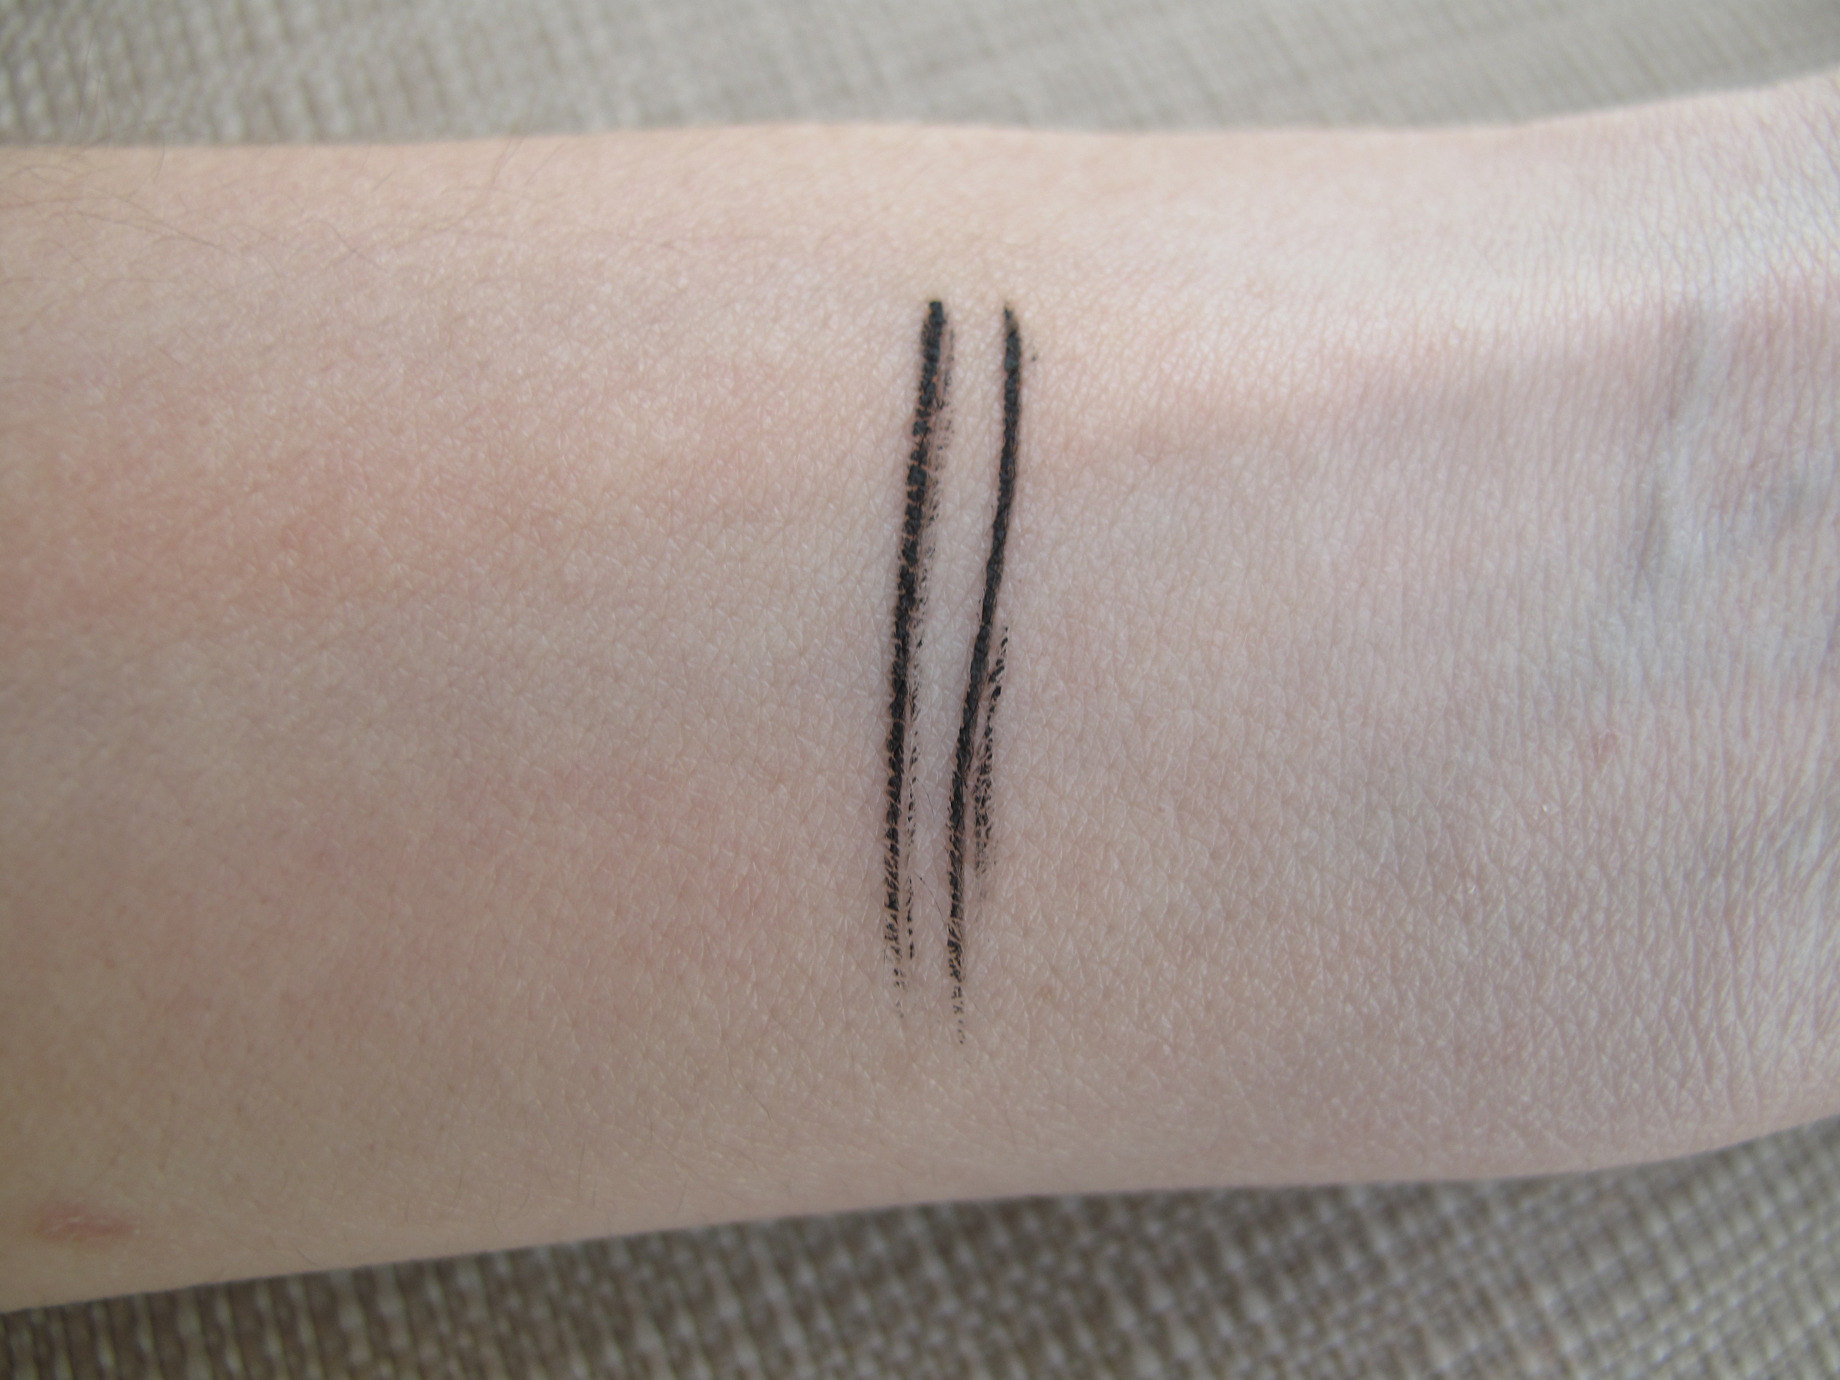 Benefit - They're real! Push-up liner - Swatch